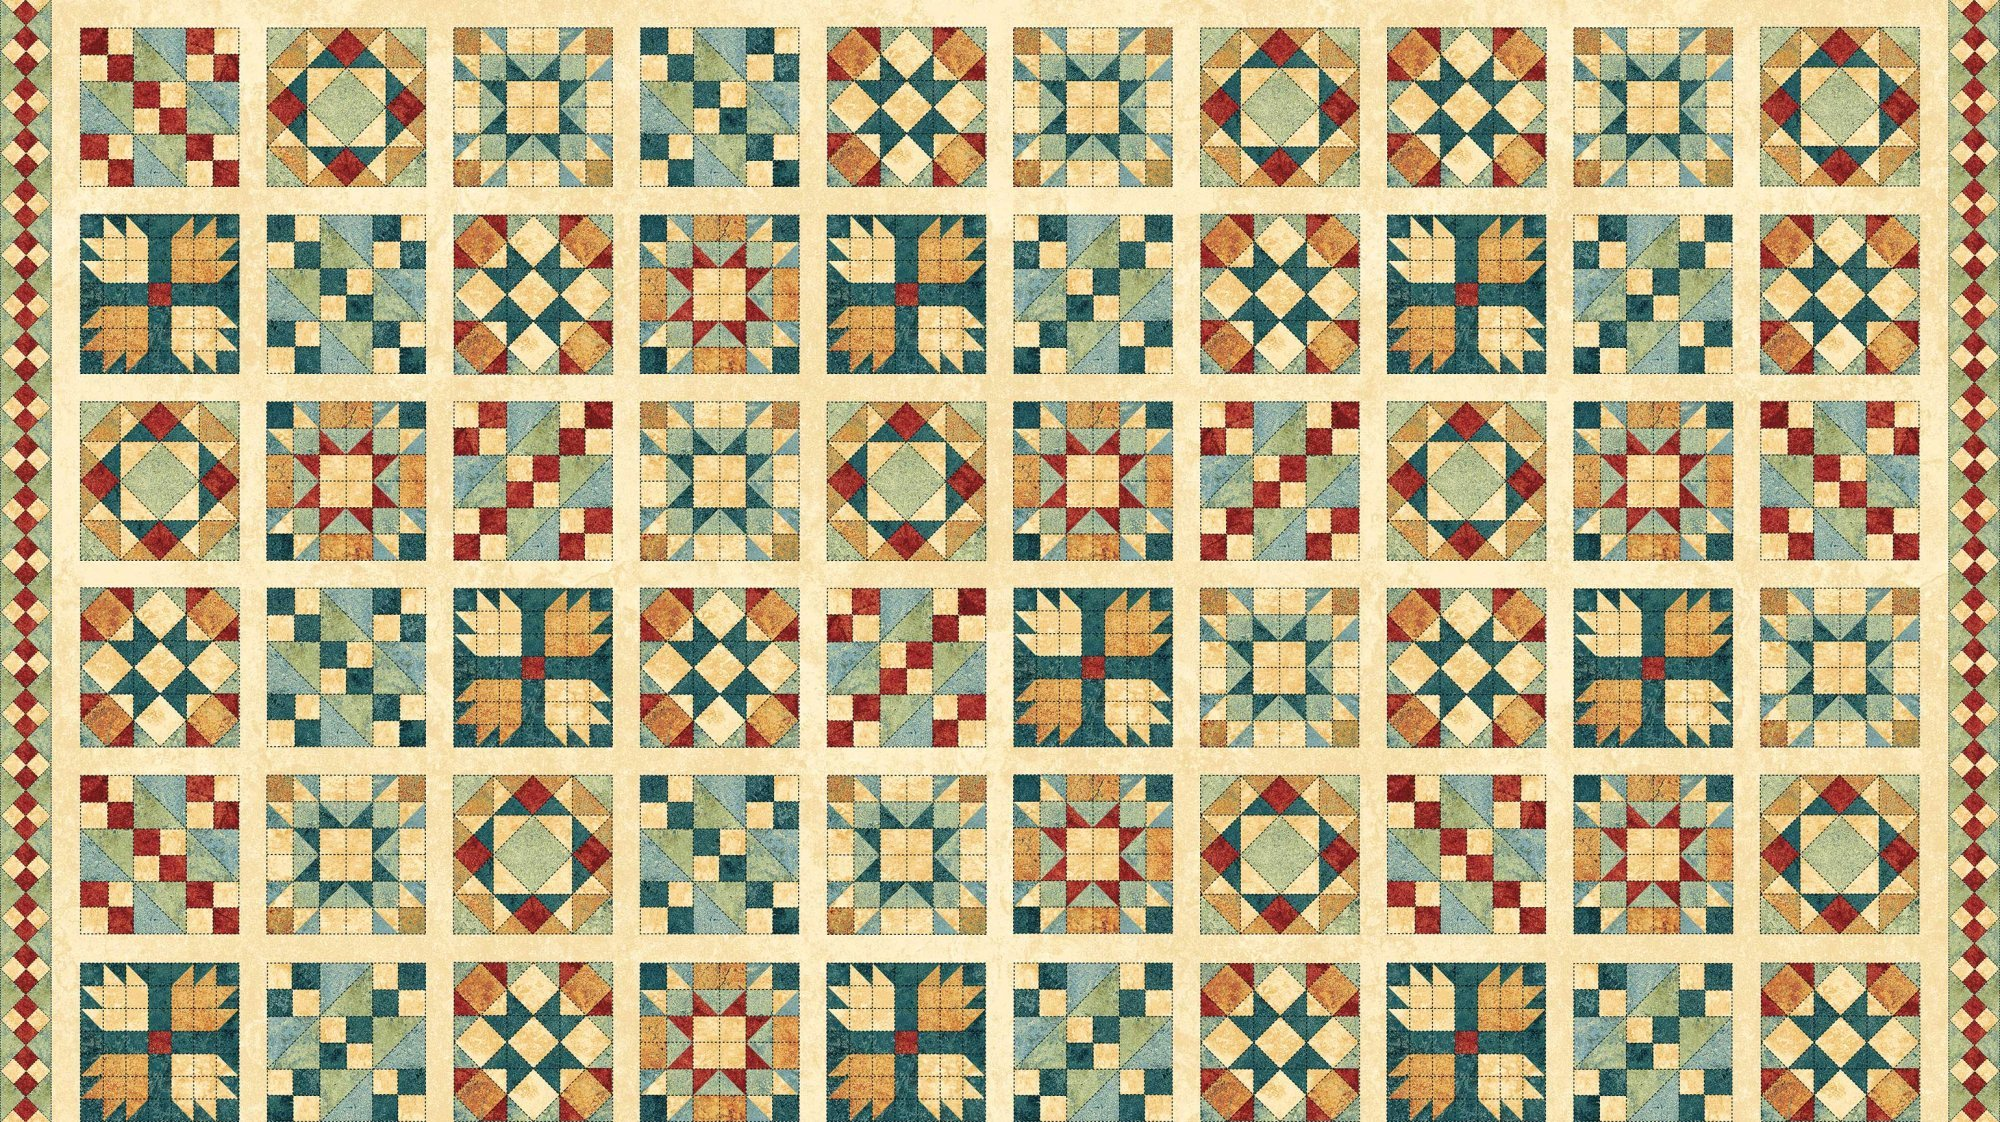 A Stitch In Time - Northcott - Quilt Blocks